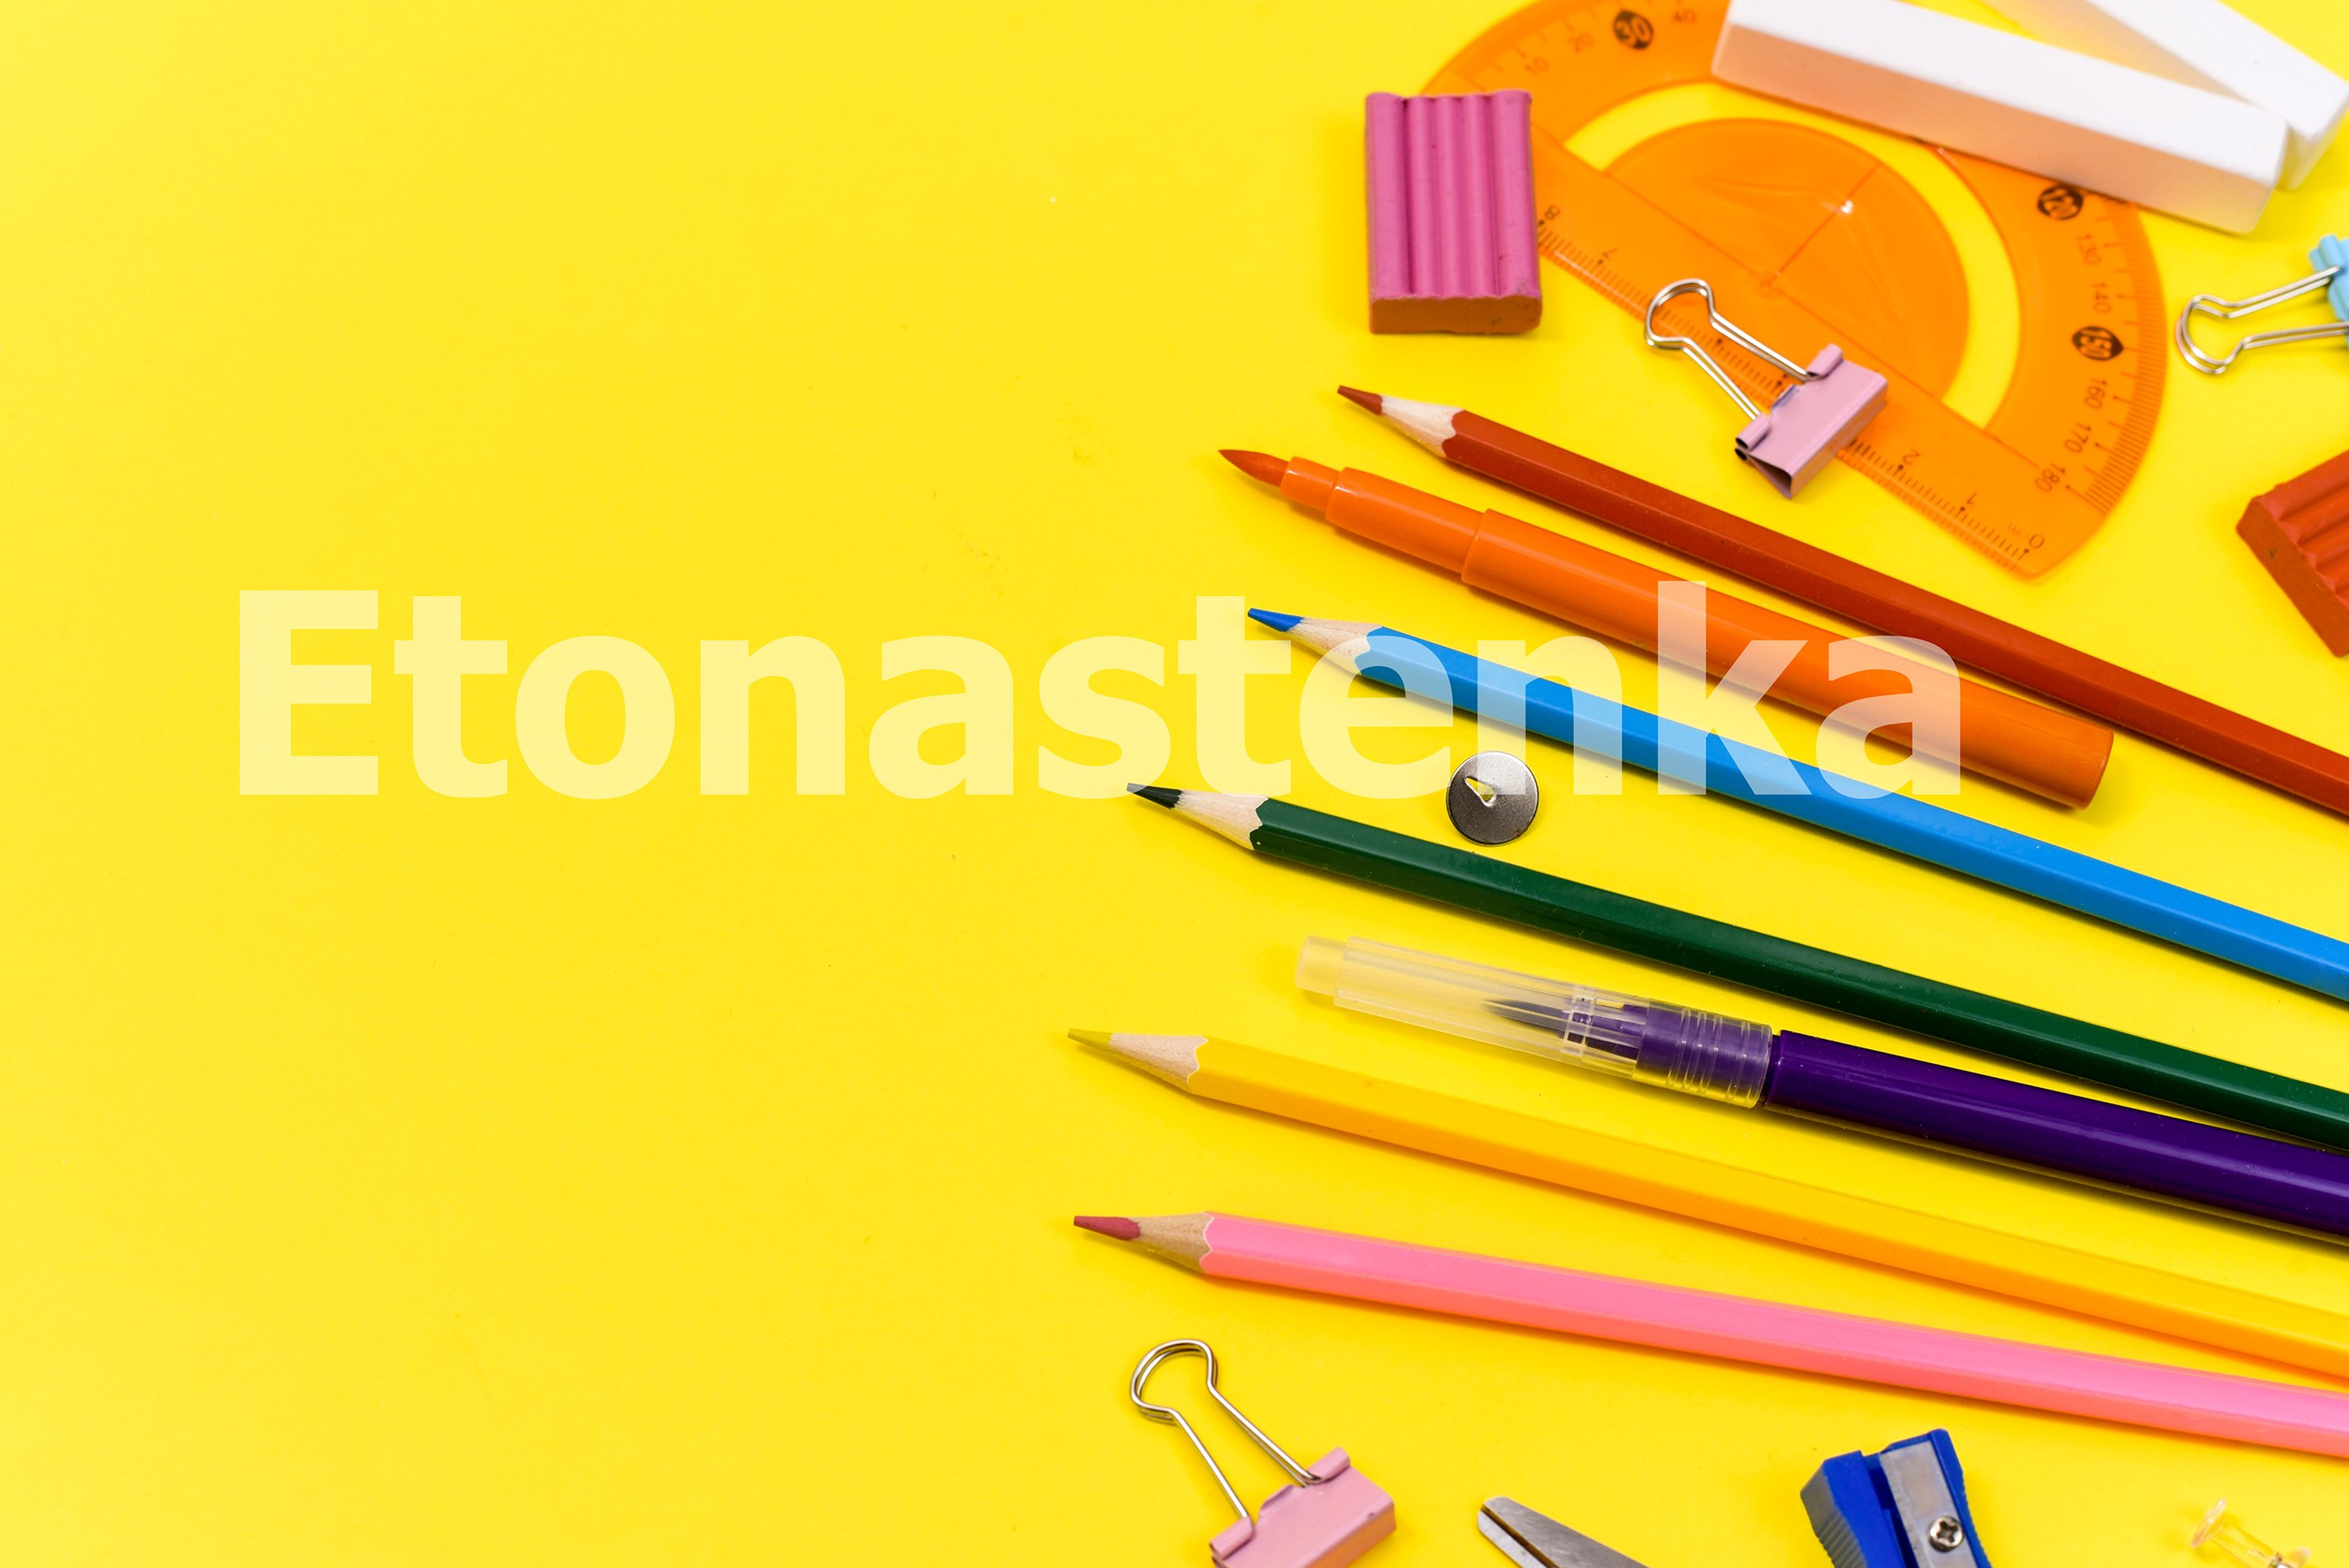 school supplies stationery on yellow background example image 1